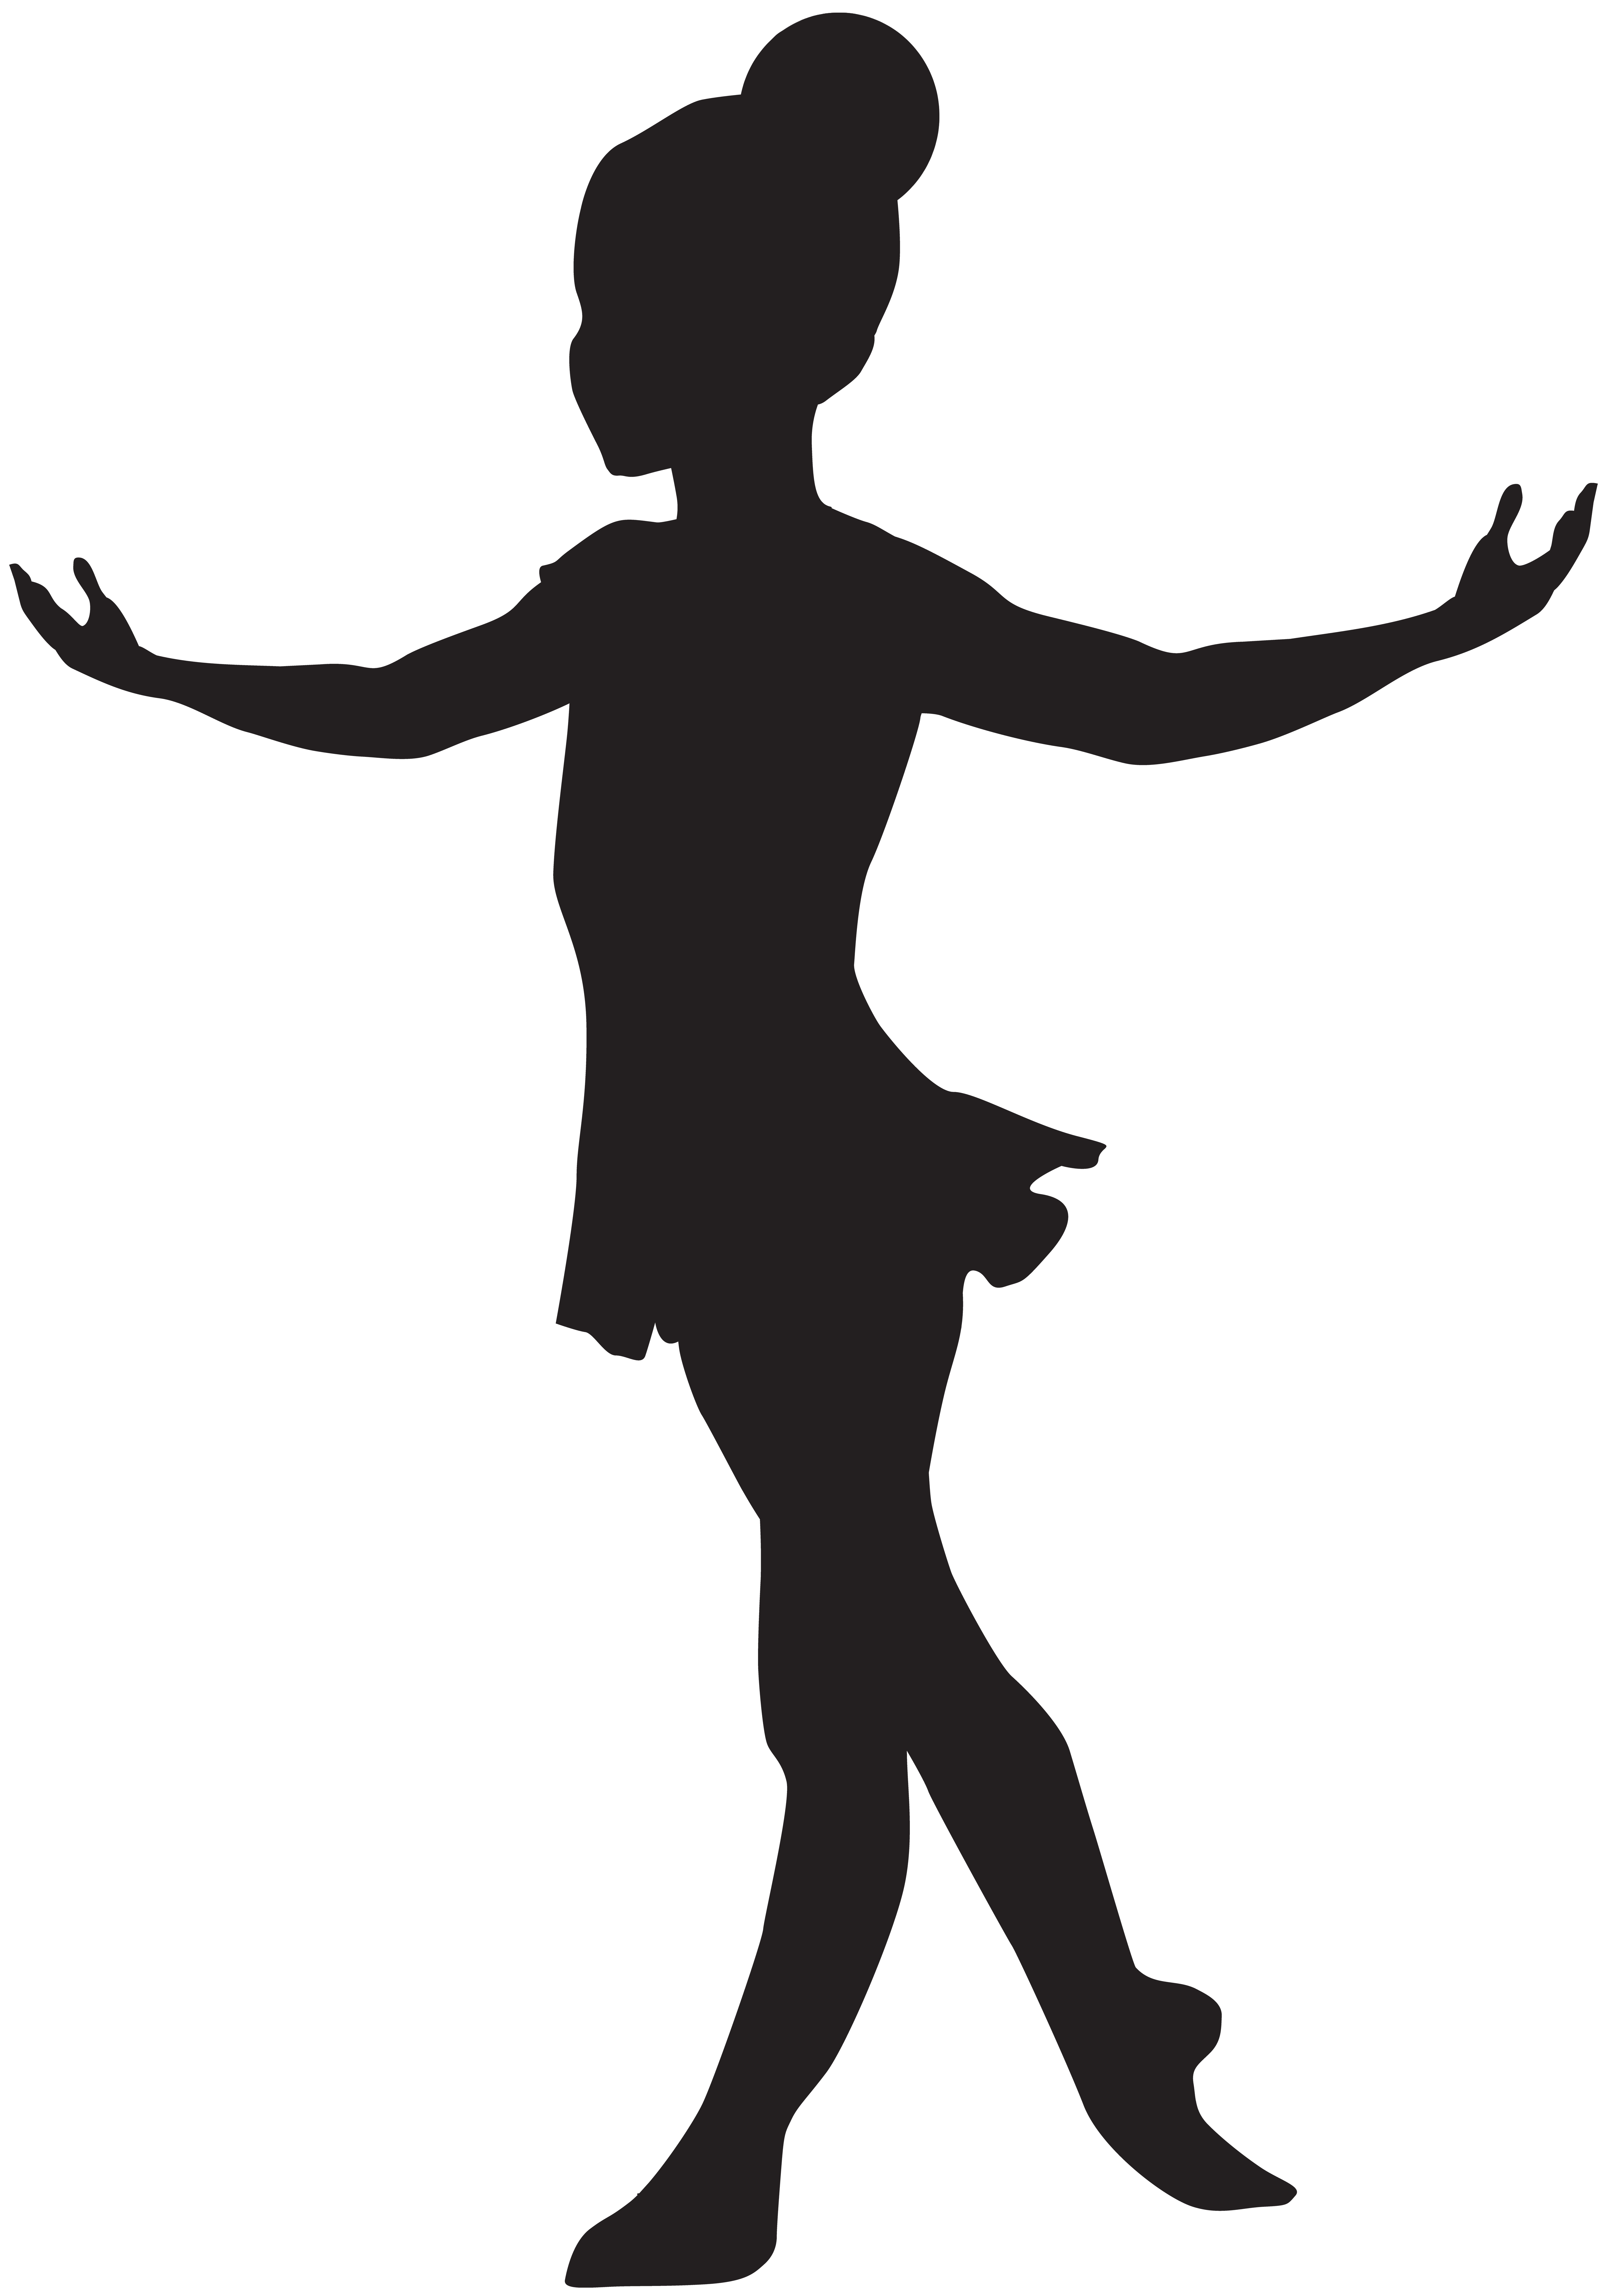 5599x8000 Hanging Ballet Shoes Silhouette